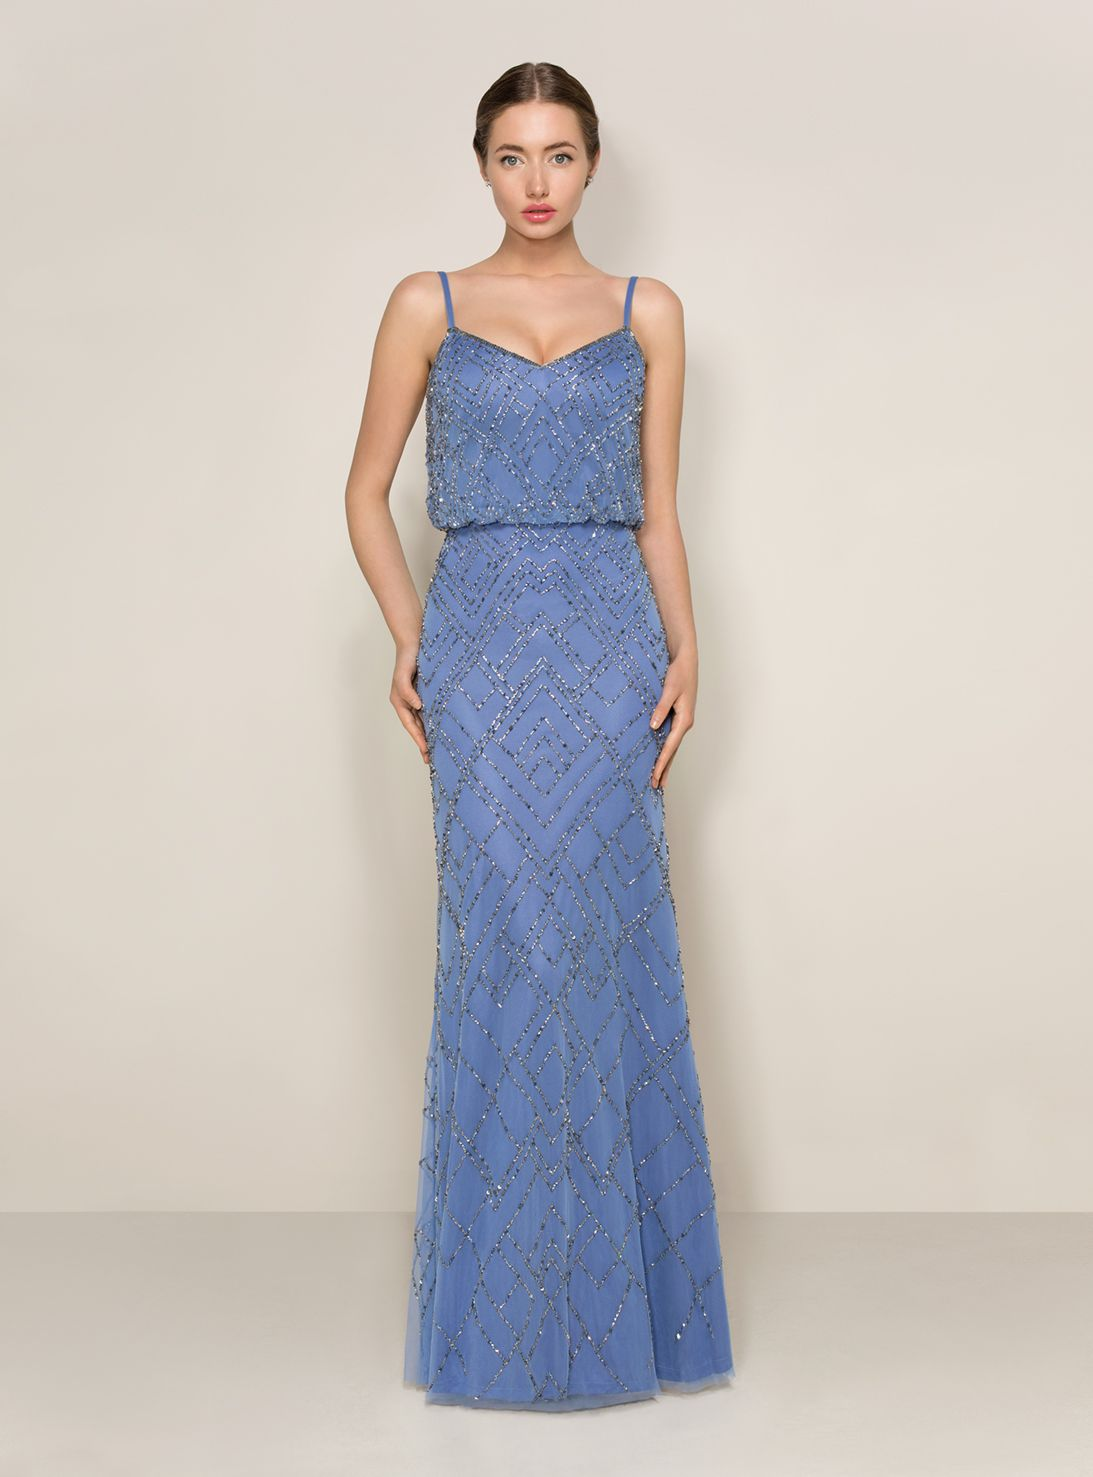 Evening dresses fashionable and graceful for the stylish